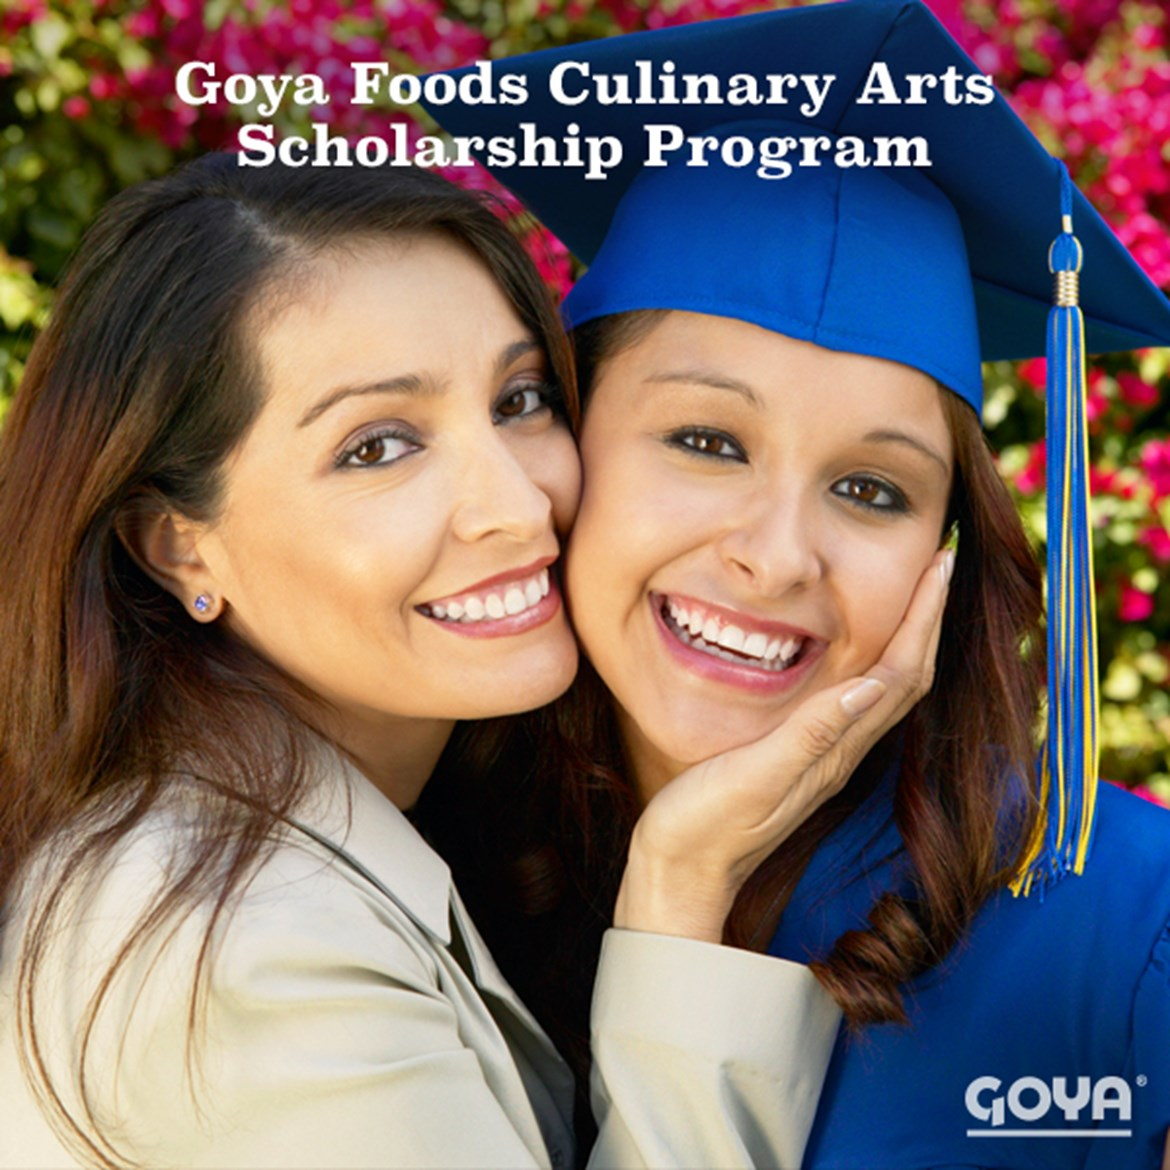 GOYA FOODS OFFERS $100,000 CULINARY ARTS & FOOD SCIENCE SCHOLARSHIPS TO STUDENTS NATIONWIDE